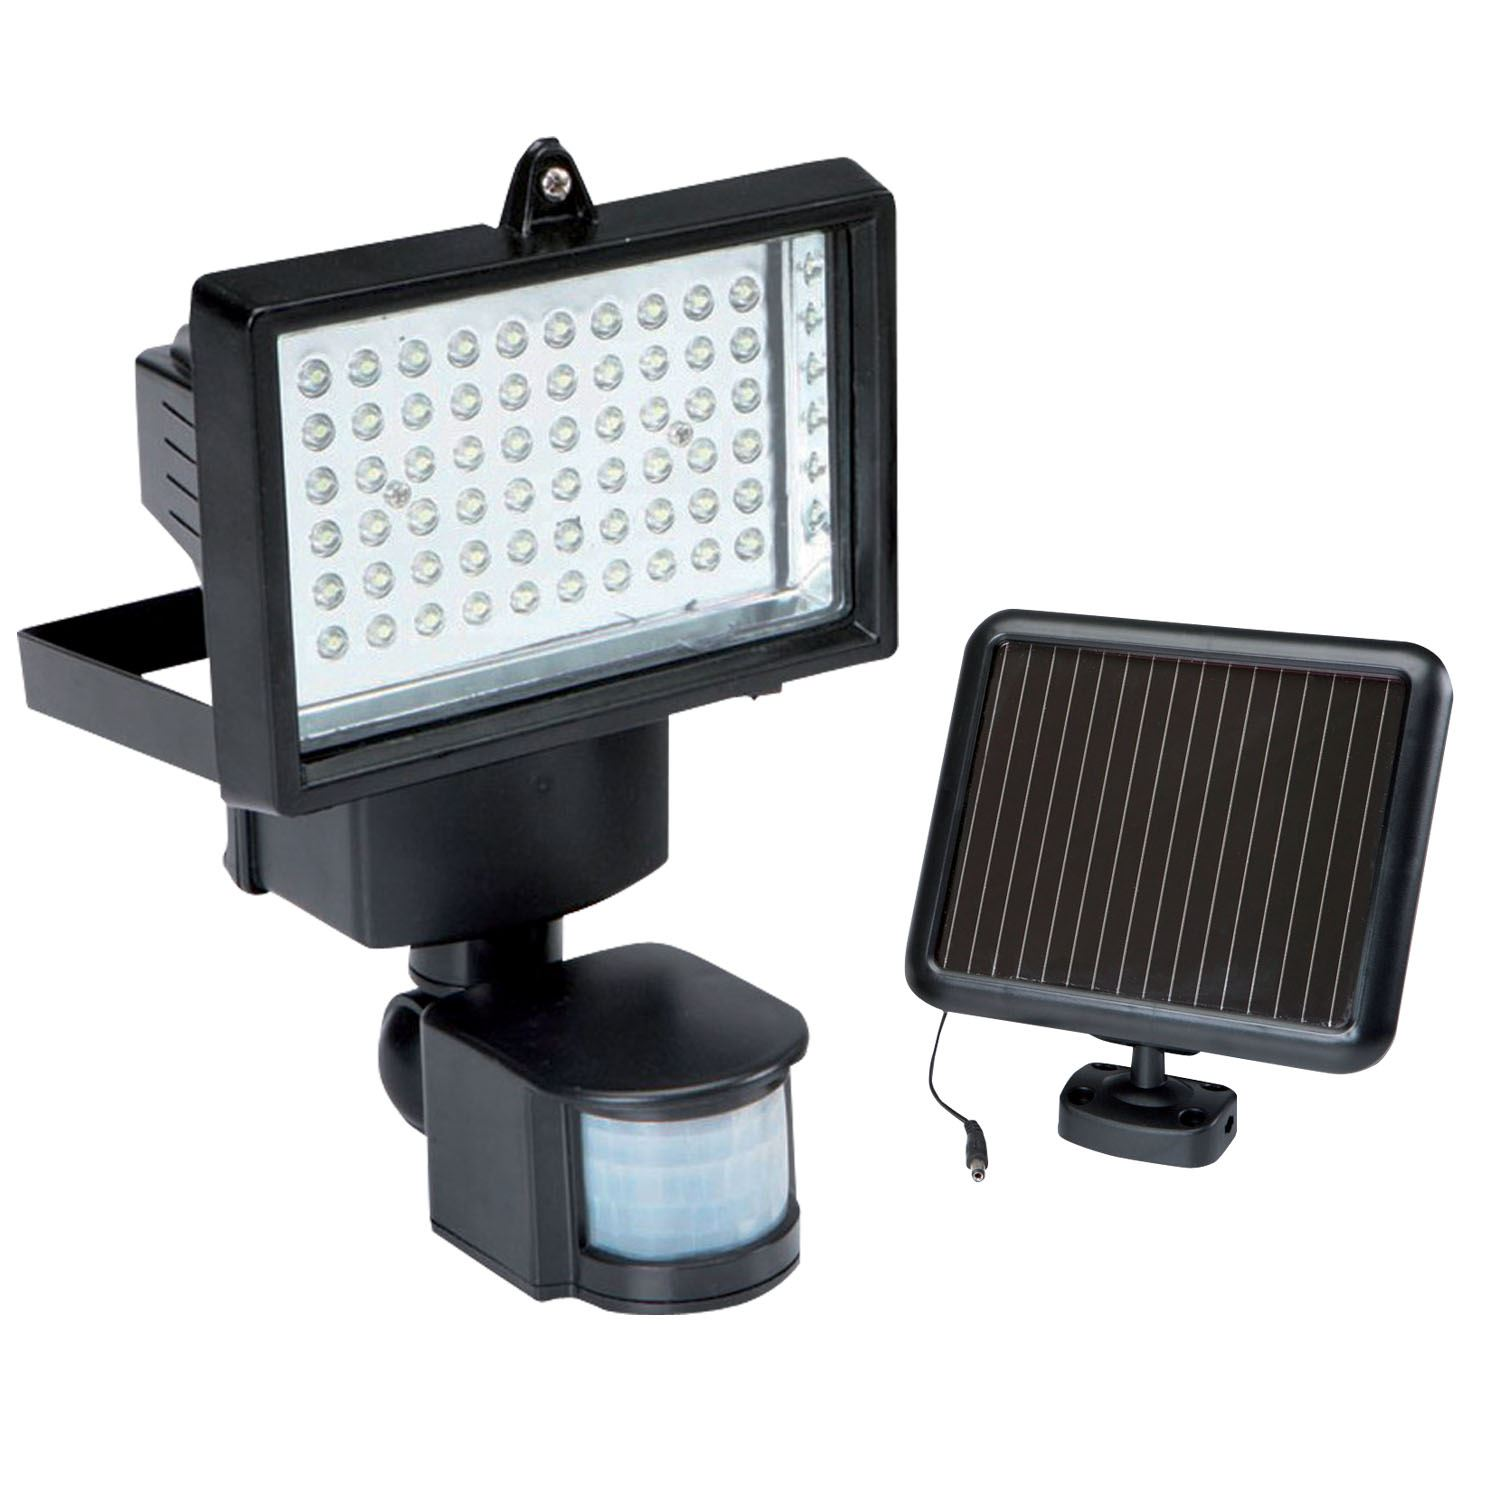 Patio Lights Wireless: Solar Power Wireless PIR Motion Sensor Security Shed Wall